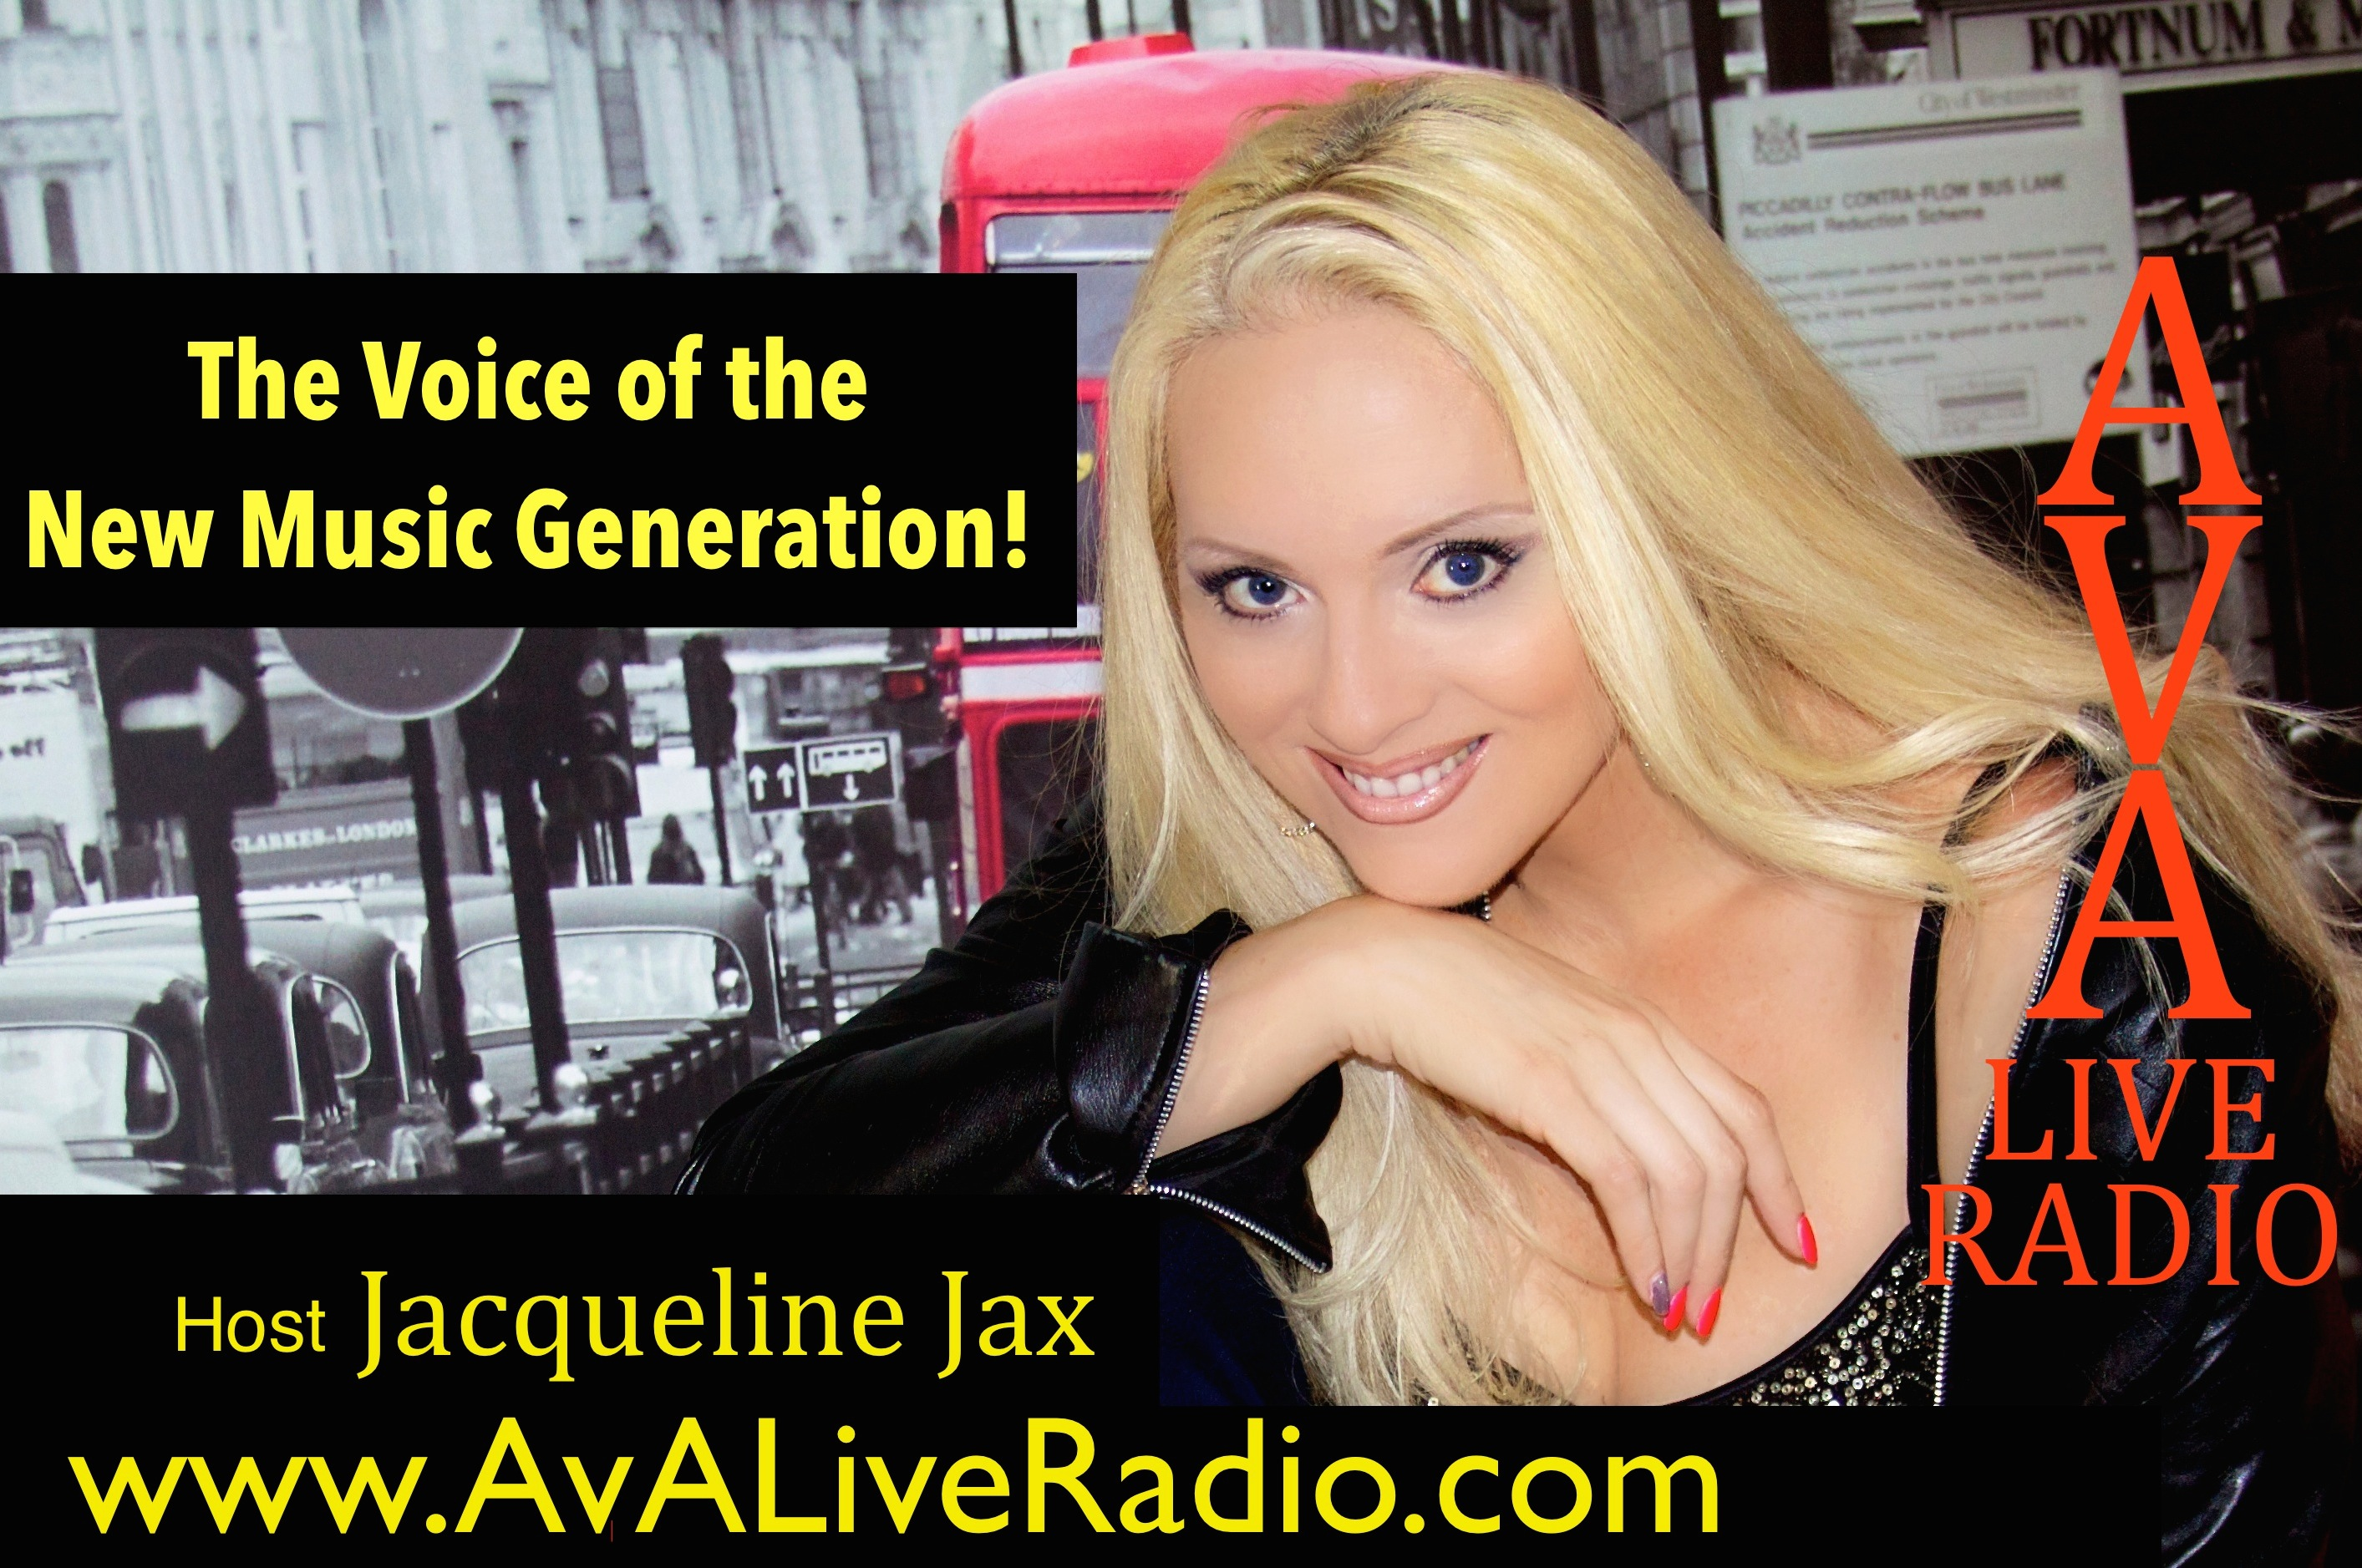 Episode #249 : A.V.A Live Radio Behind The Music with Jacqueline Jax